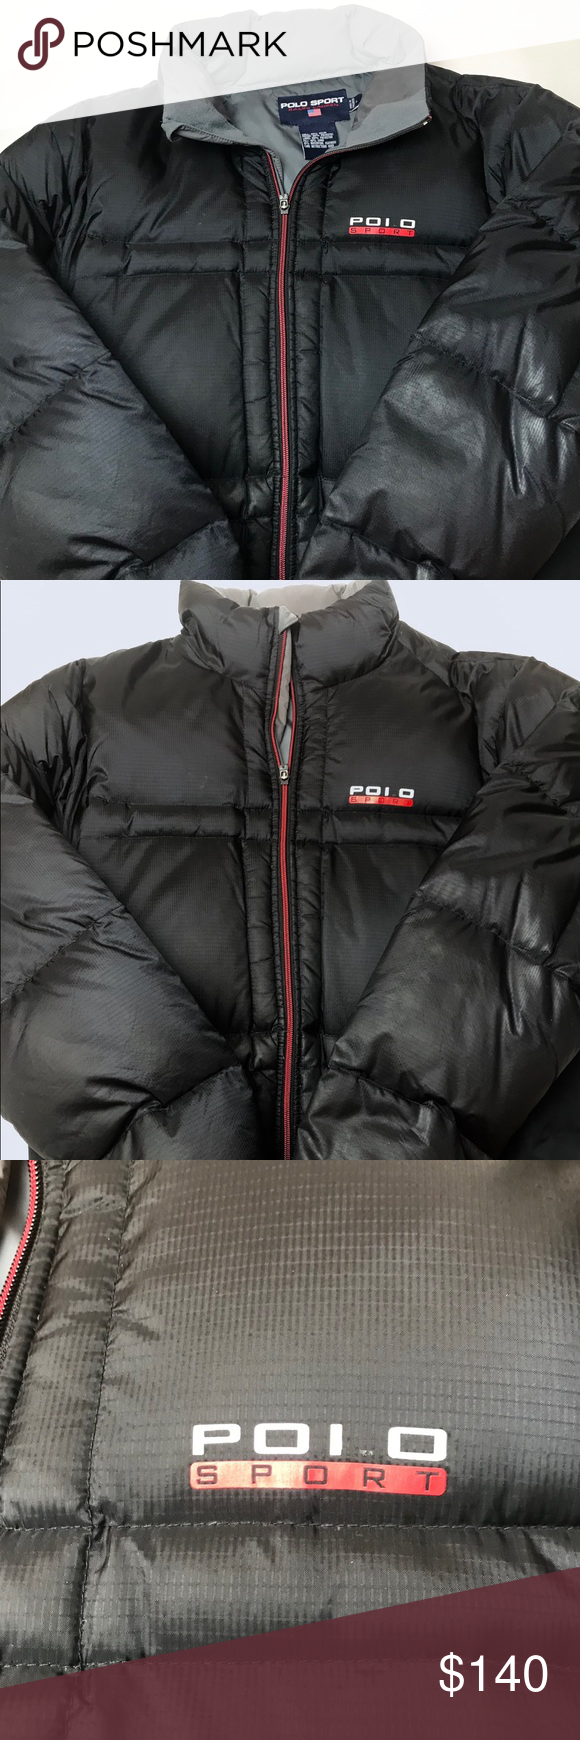 Polo Sport Puffer Jacket This Is A Polo Sport Puffer Jacket Down Jacket In Great Condition Size L It Is Black Wit Puffer Jackets Jackets Ralph Lauren Jackets [ 1740 x 580 Pixel ]